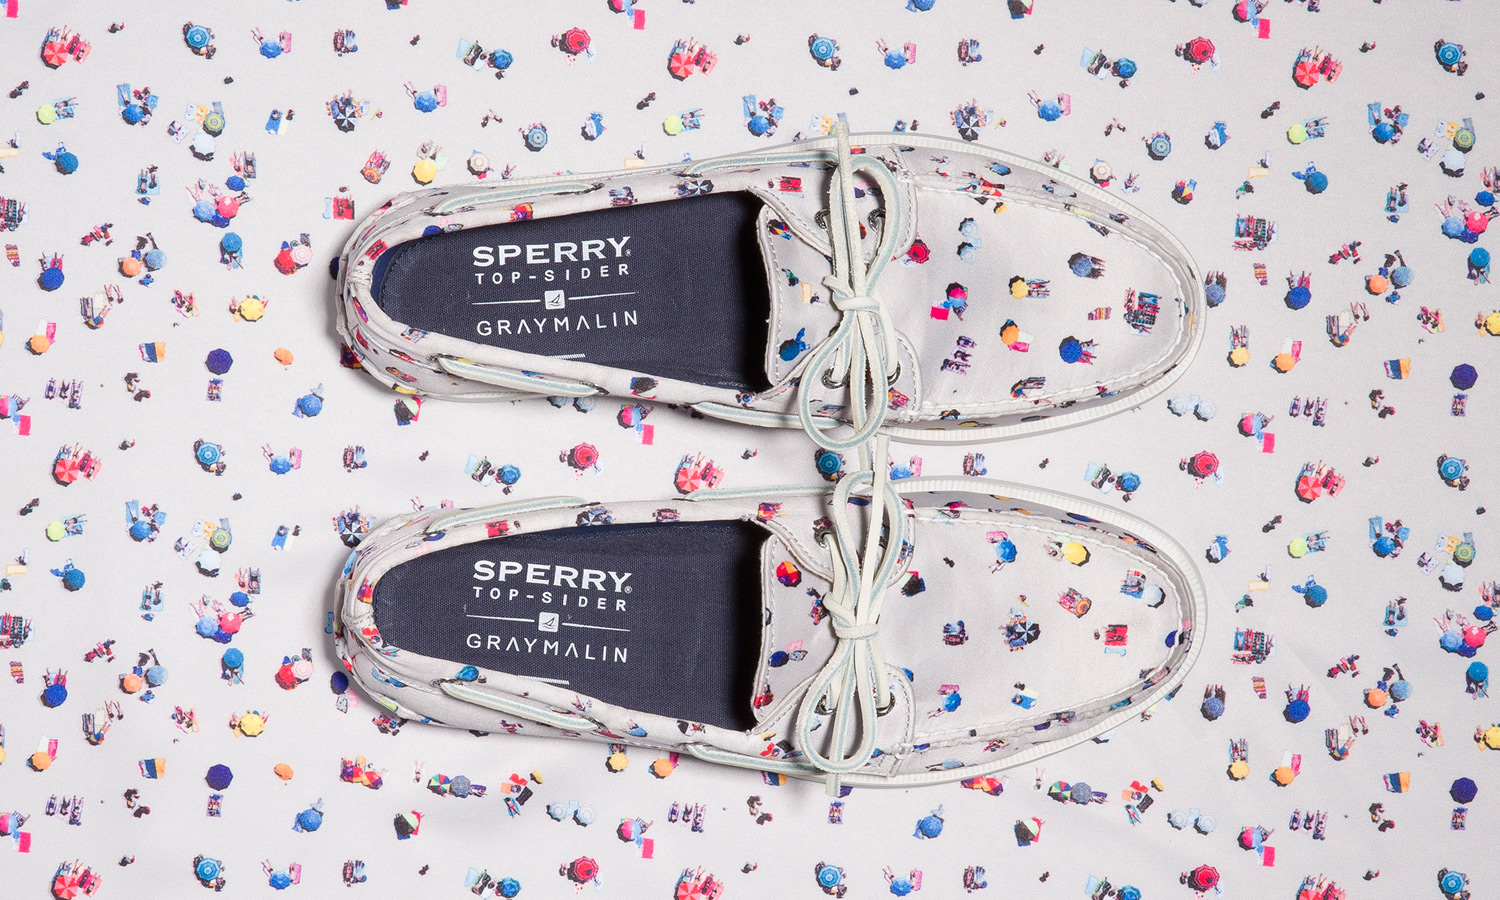 sperry-gray-malin-2015-feat